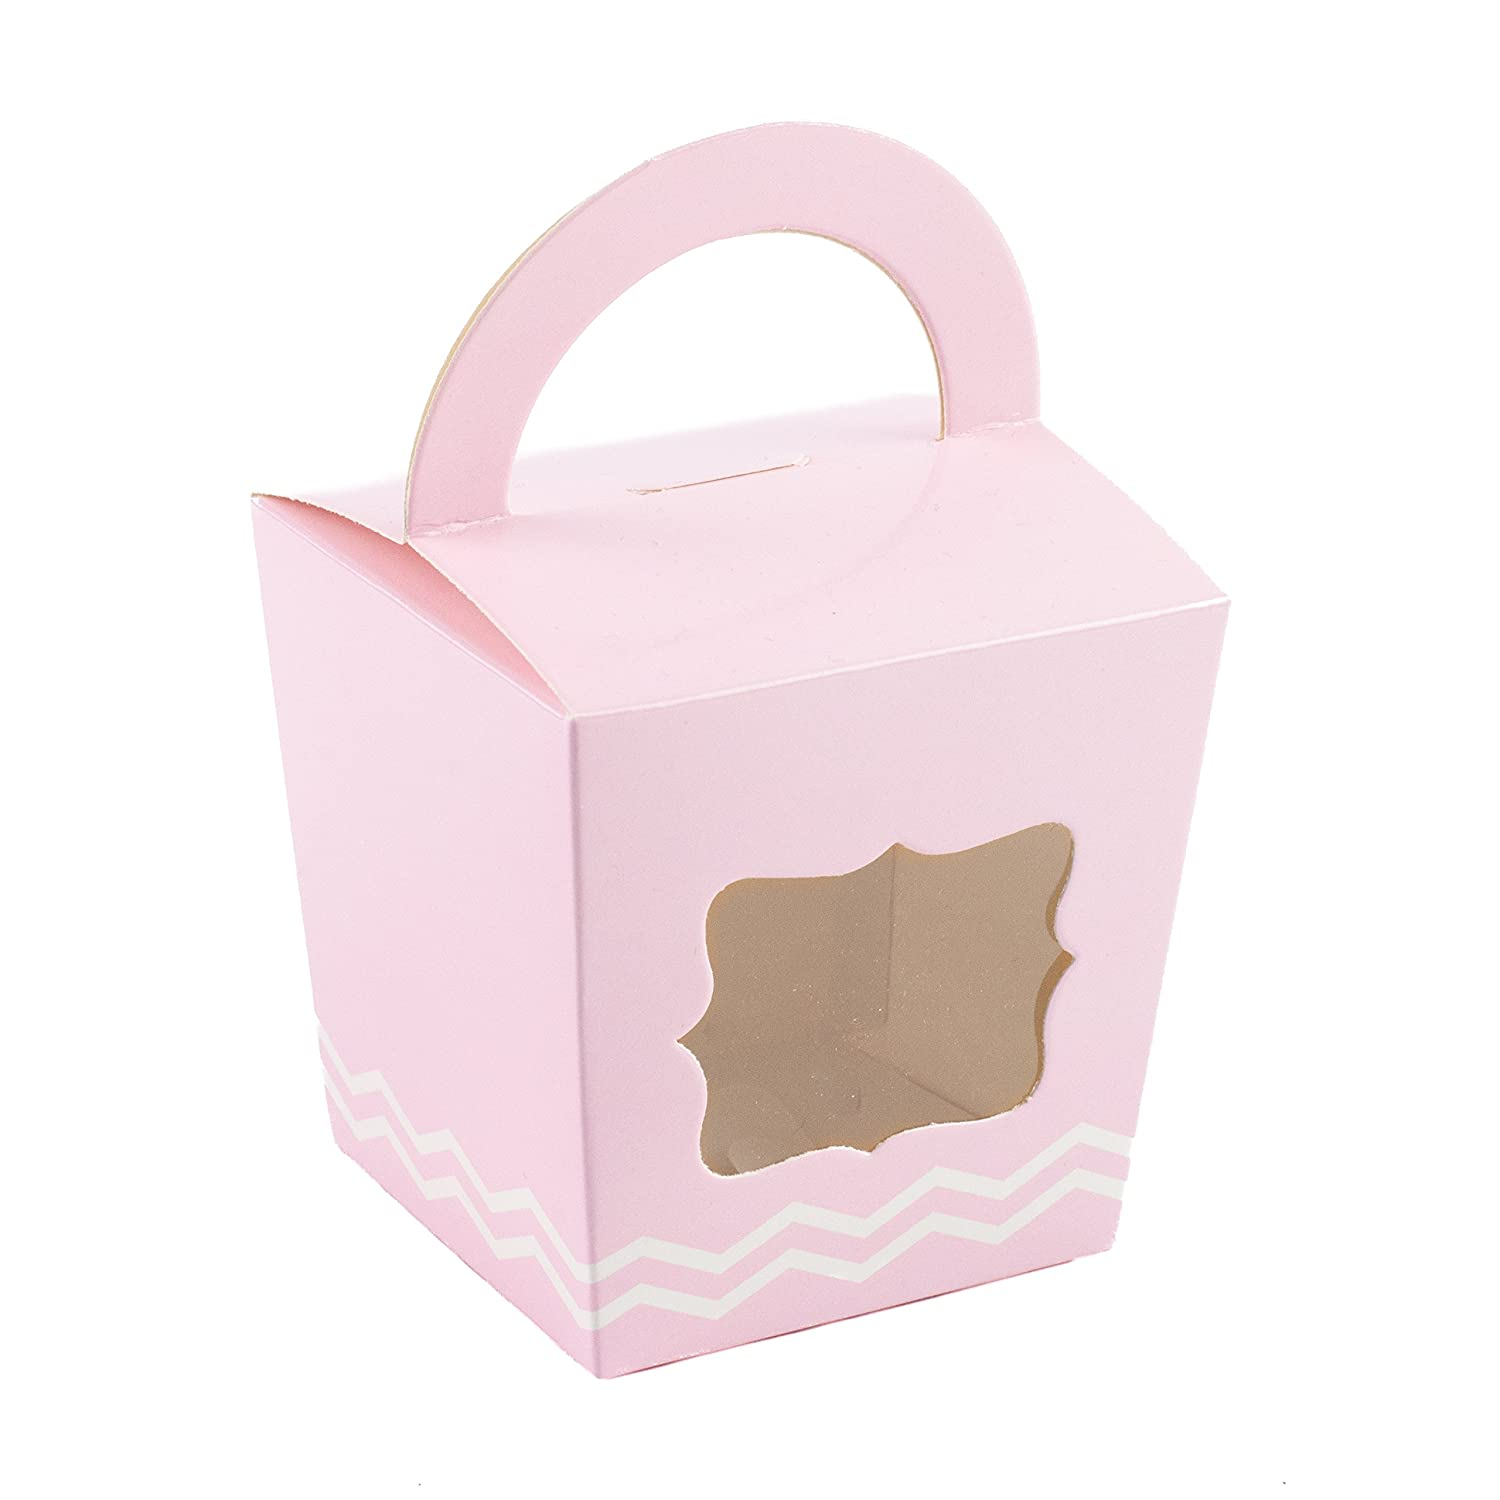 10 x Cupcake Box With Handle Pink Cake Box With Zigzag Pattern Ibex Retail